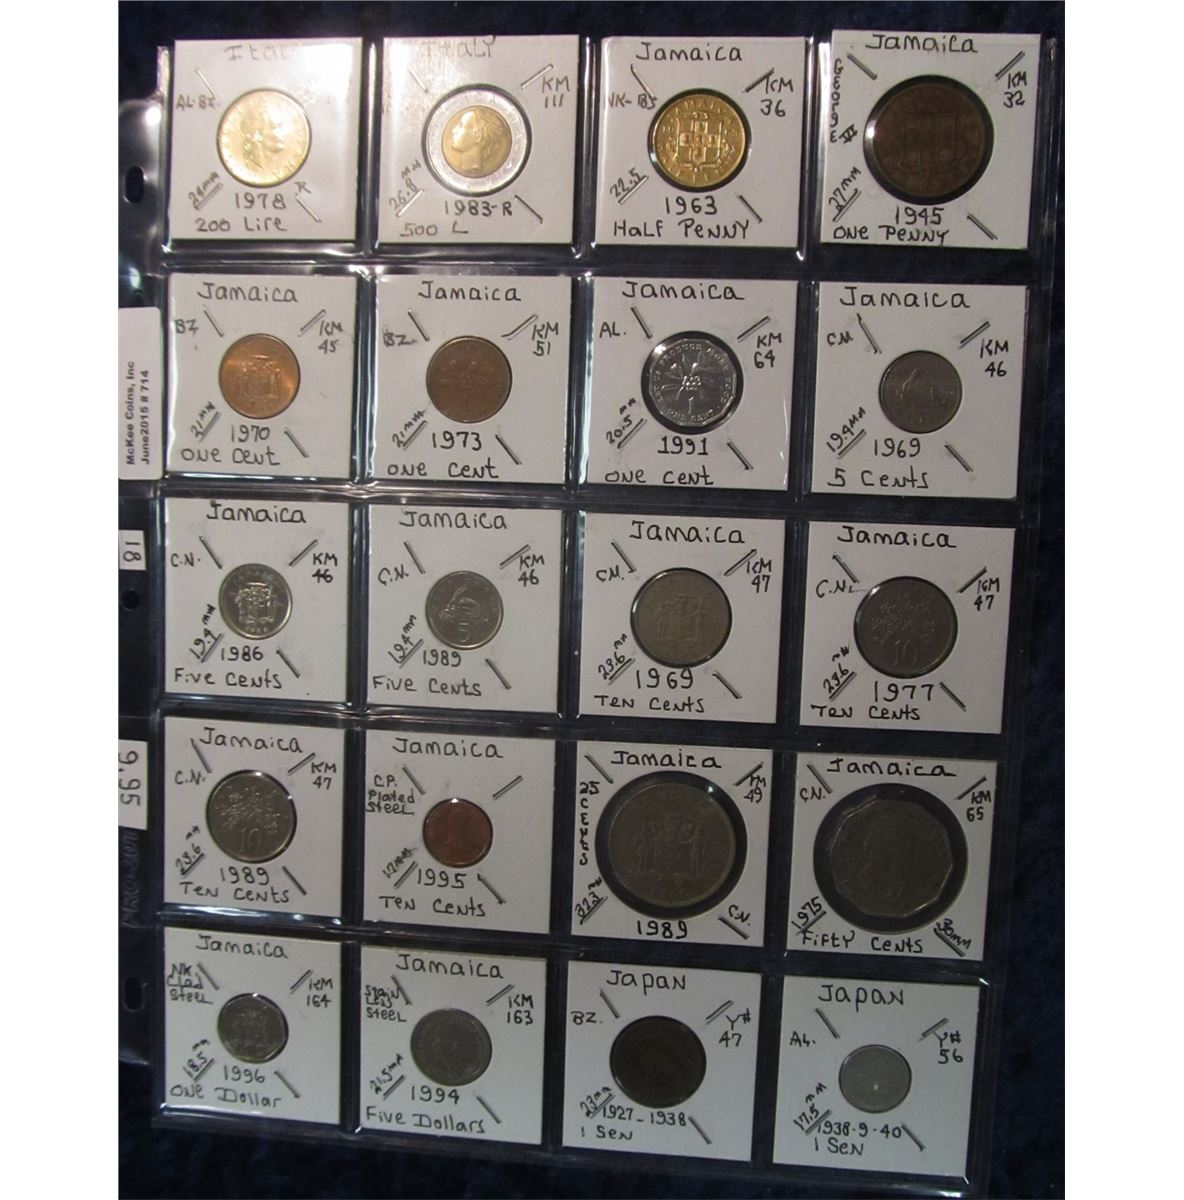 714  World Coins, 20 in page, all identified and from Italy, Jamaica, &  Japan  KM value $9 95